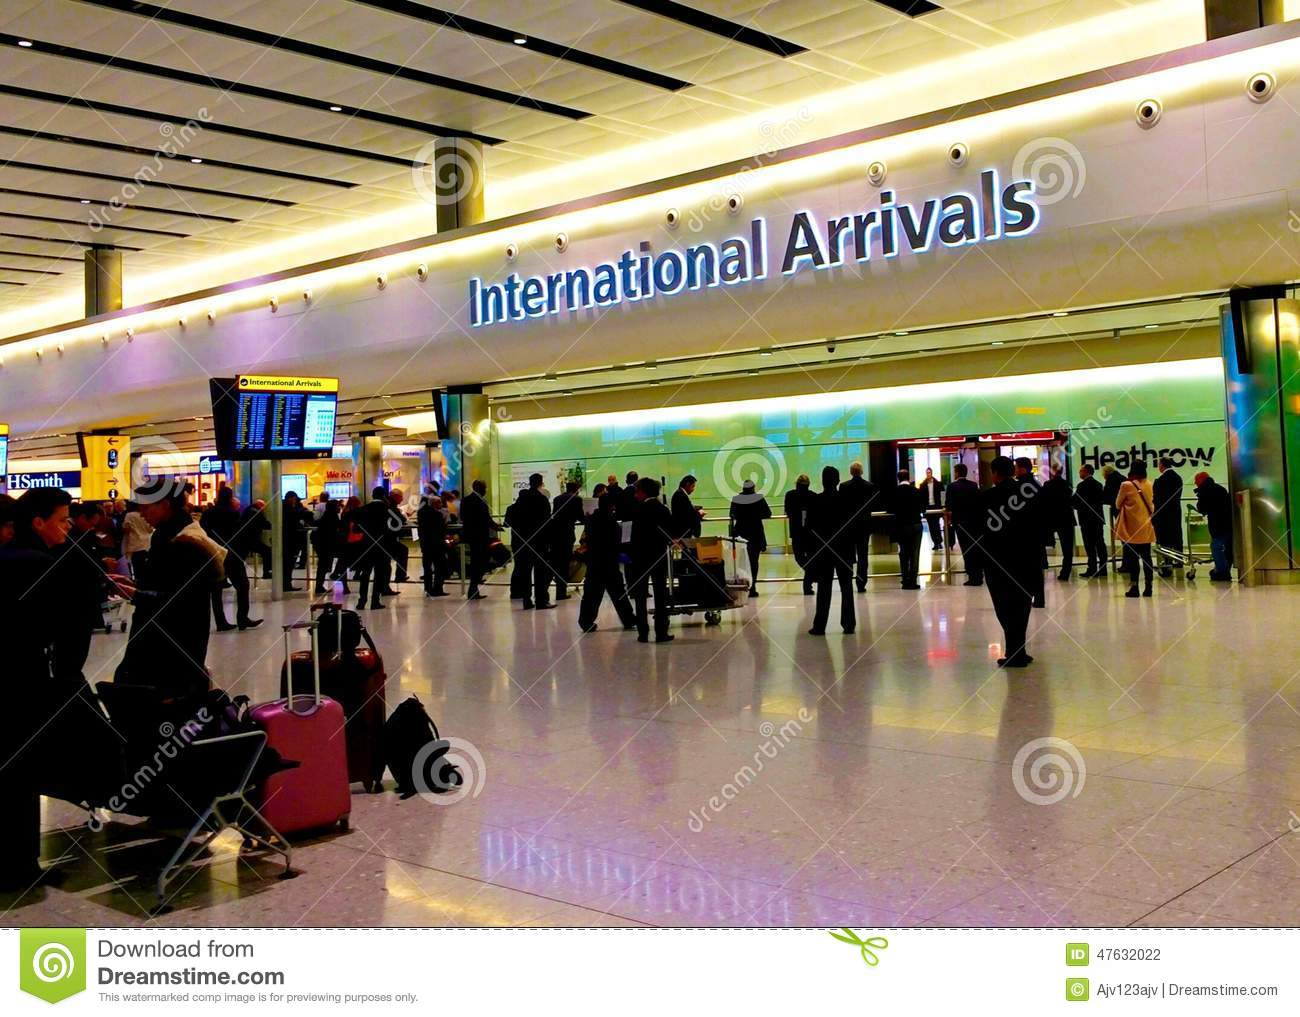 Heathrow Airport Arrivals and Departures (LHR) - UK